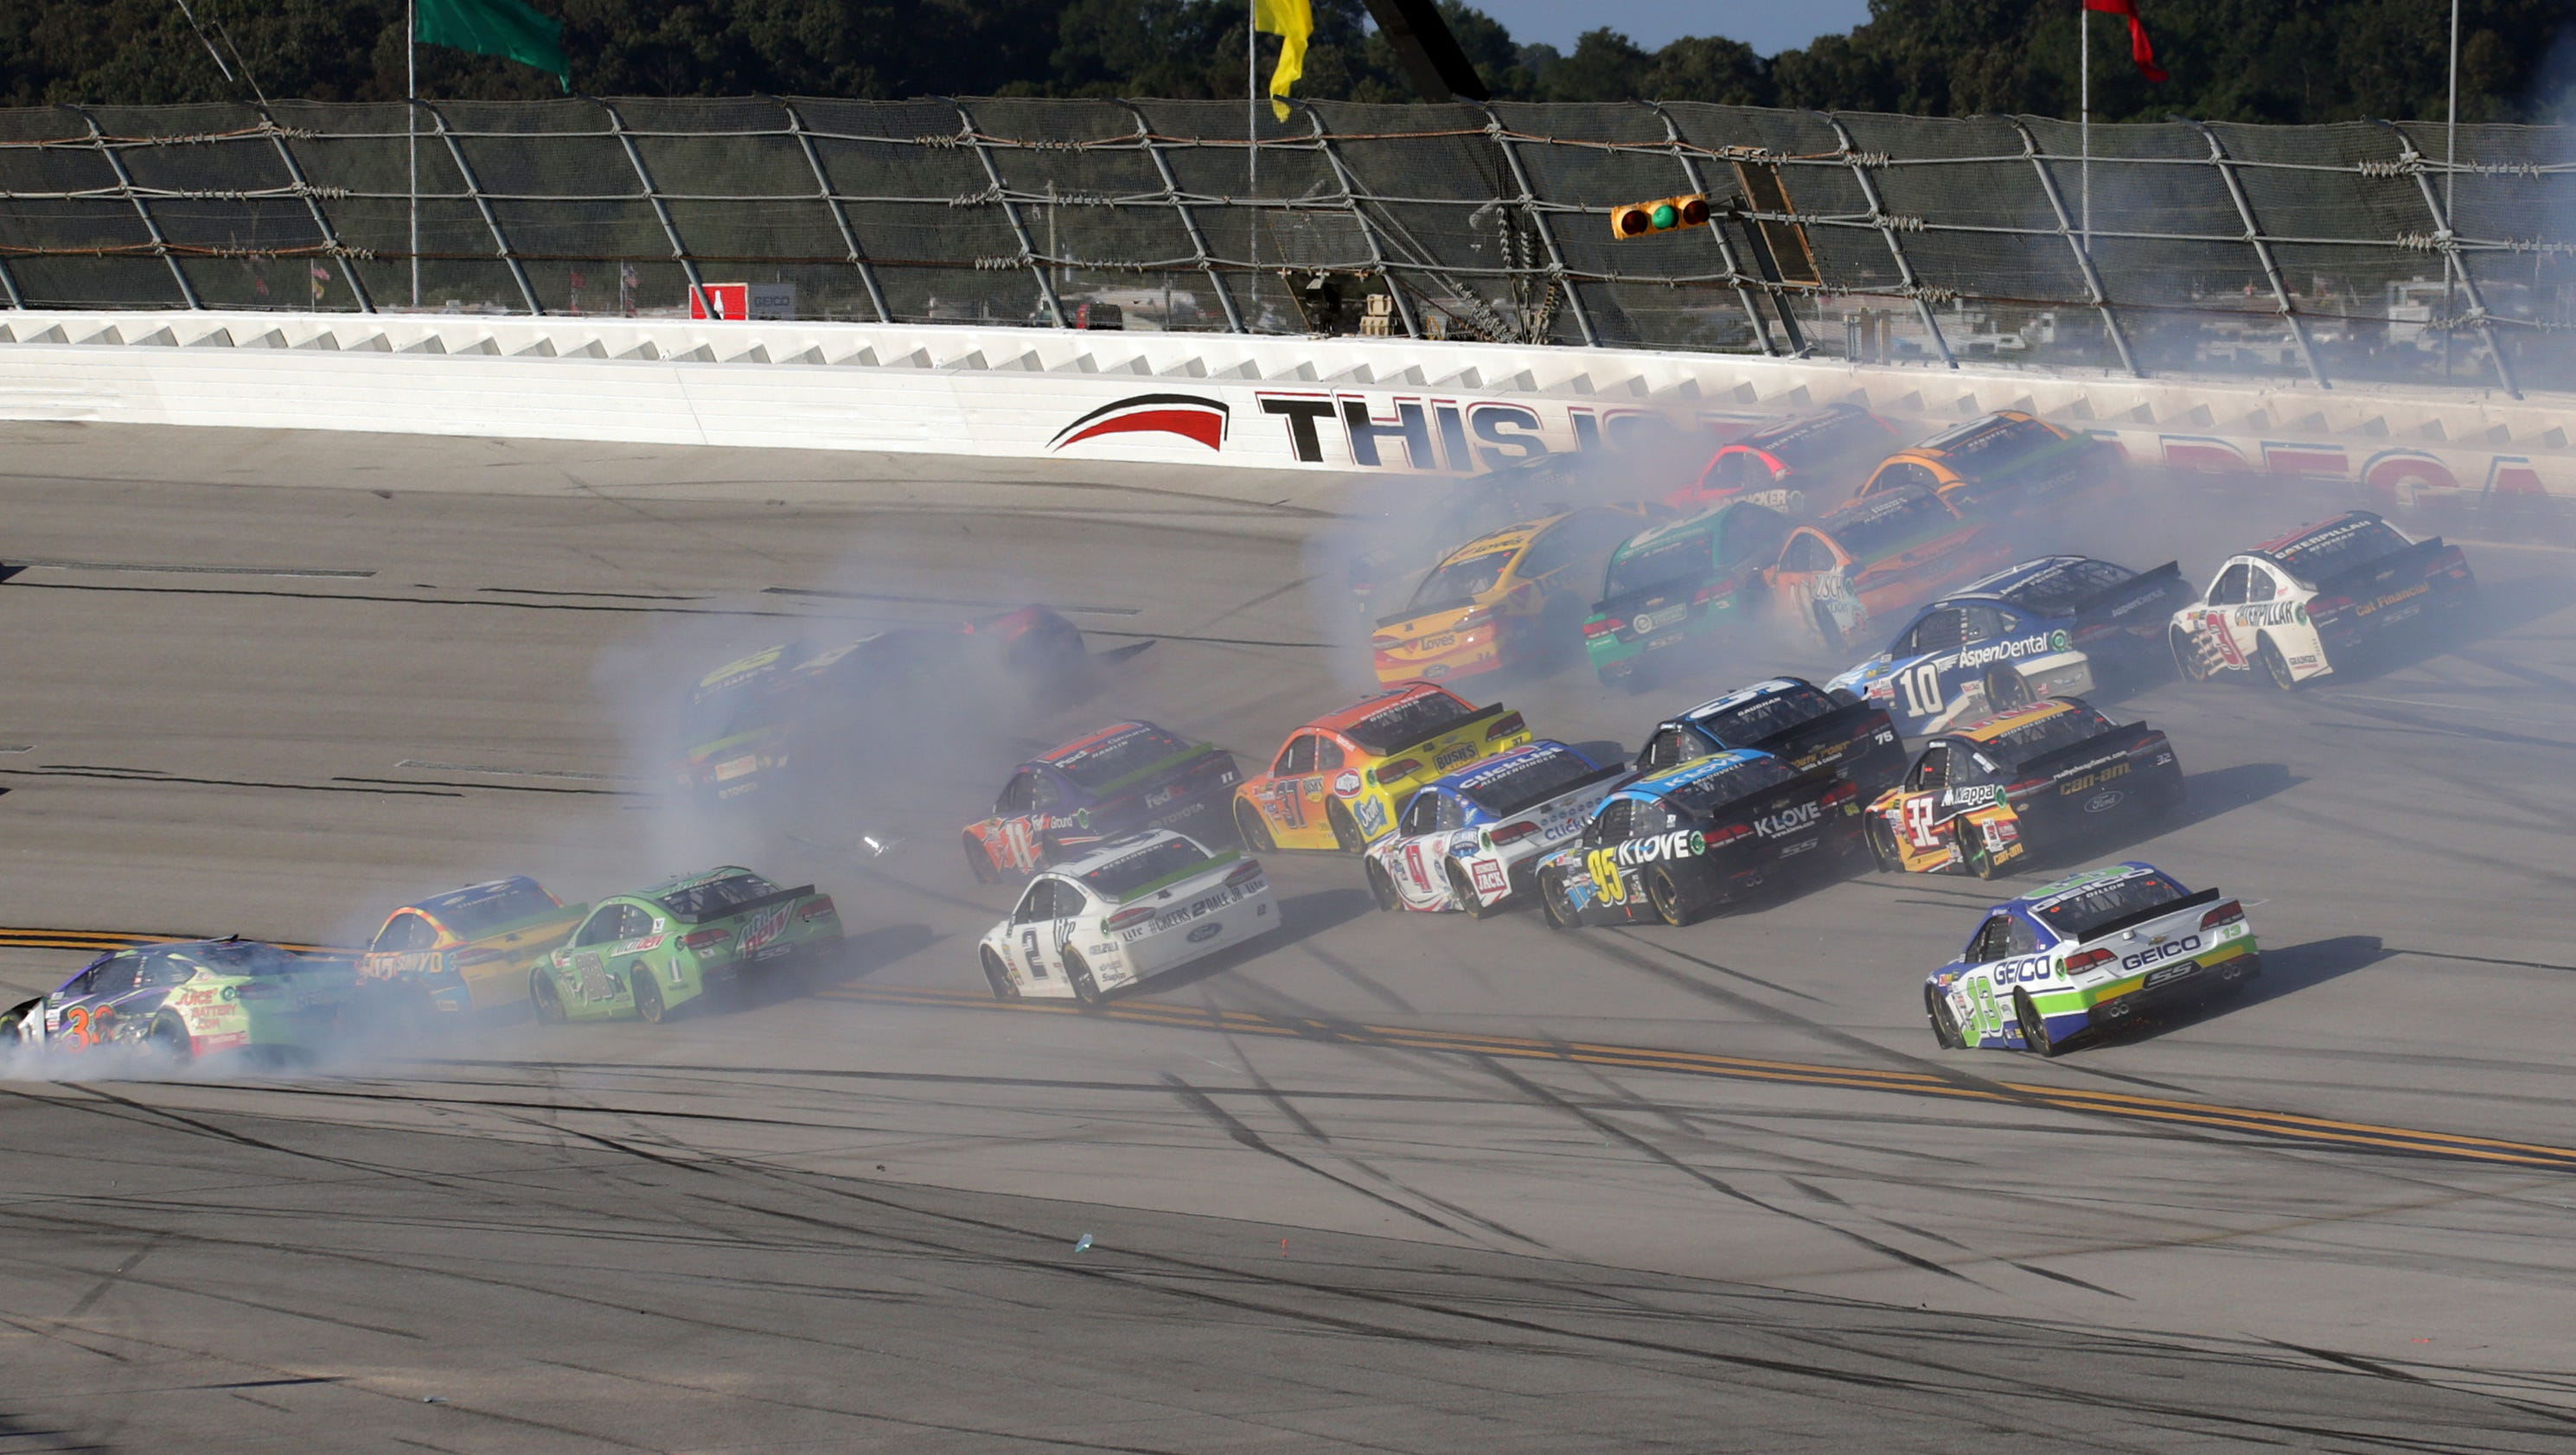 NASCAR: Watch wild and memorable crashes at Talladega Superspeedway